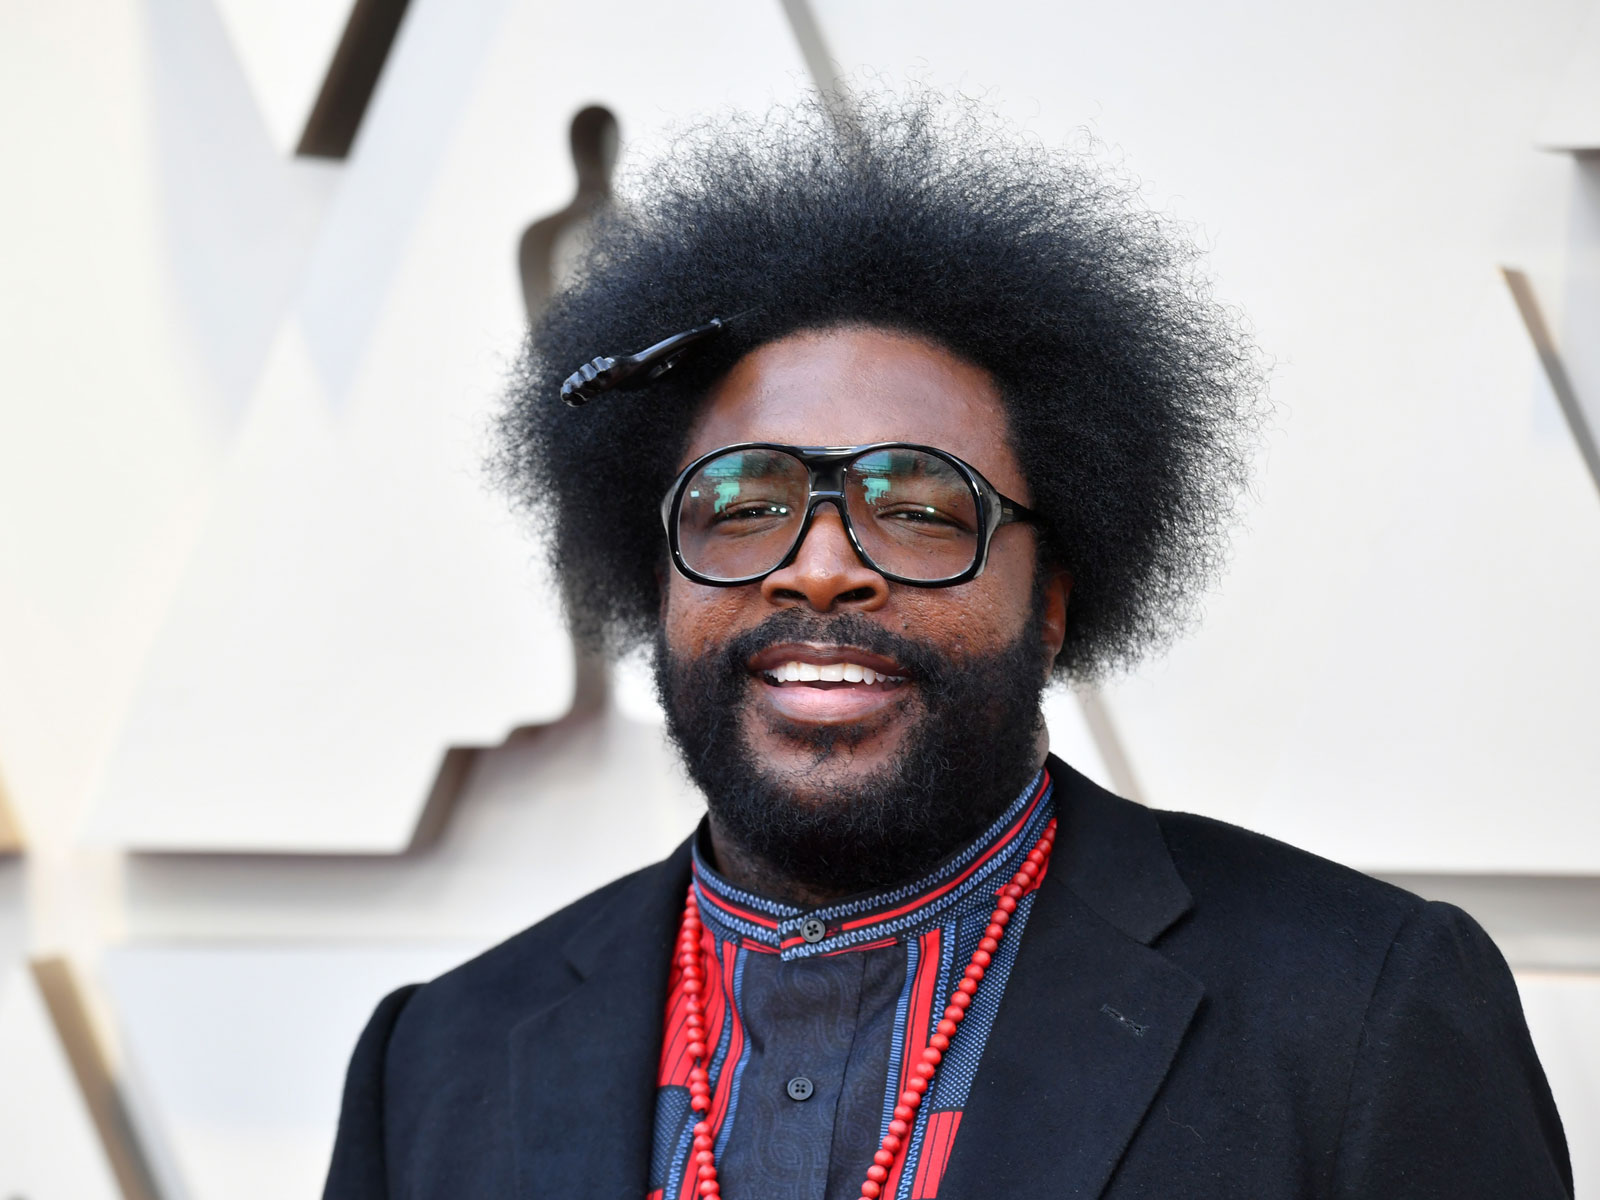 Questlove Launches Vegetarian Cheesesteak with Impossible Foods